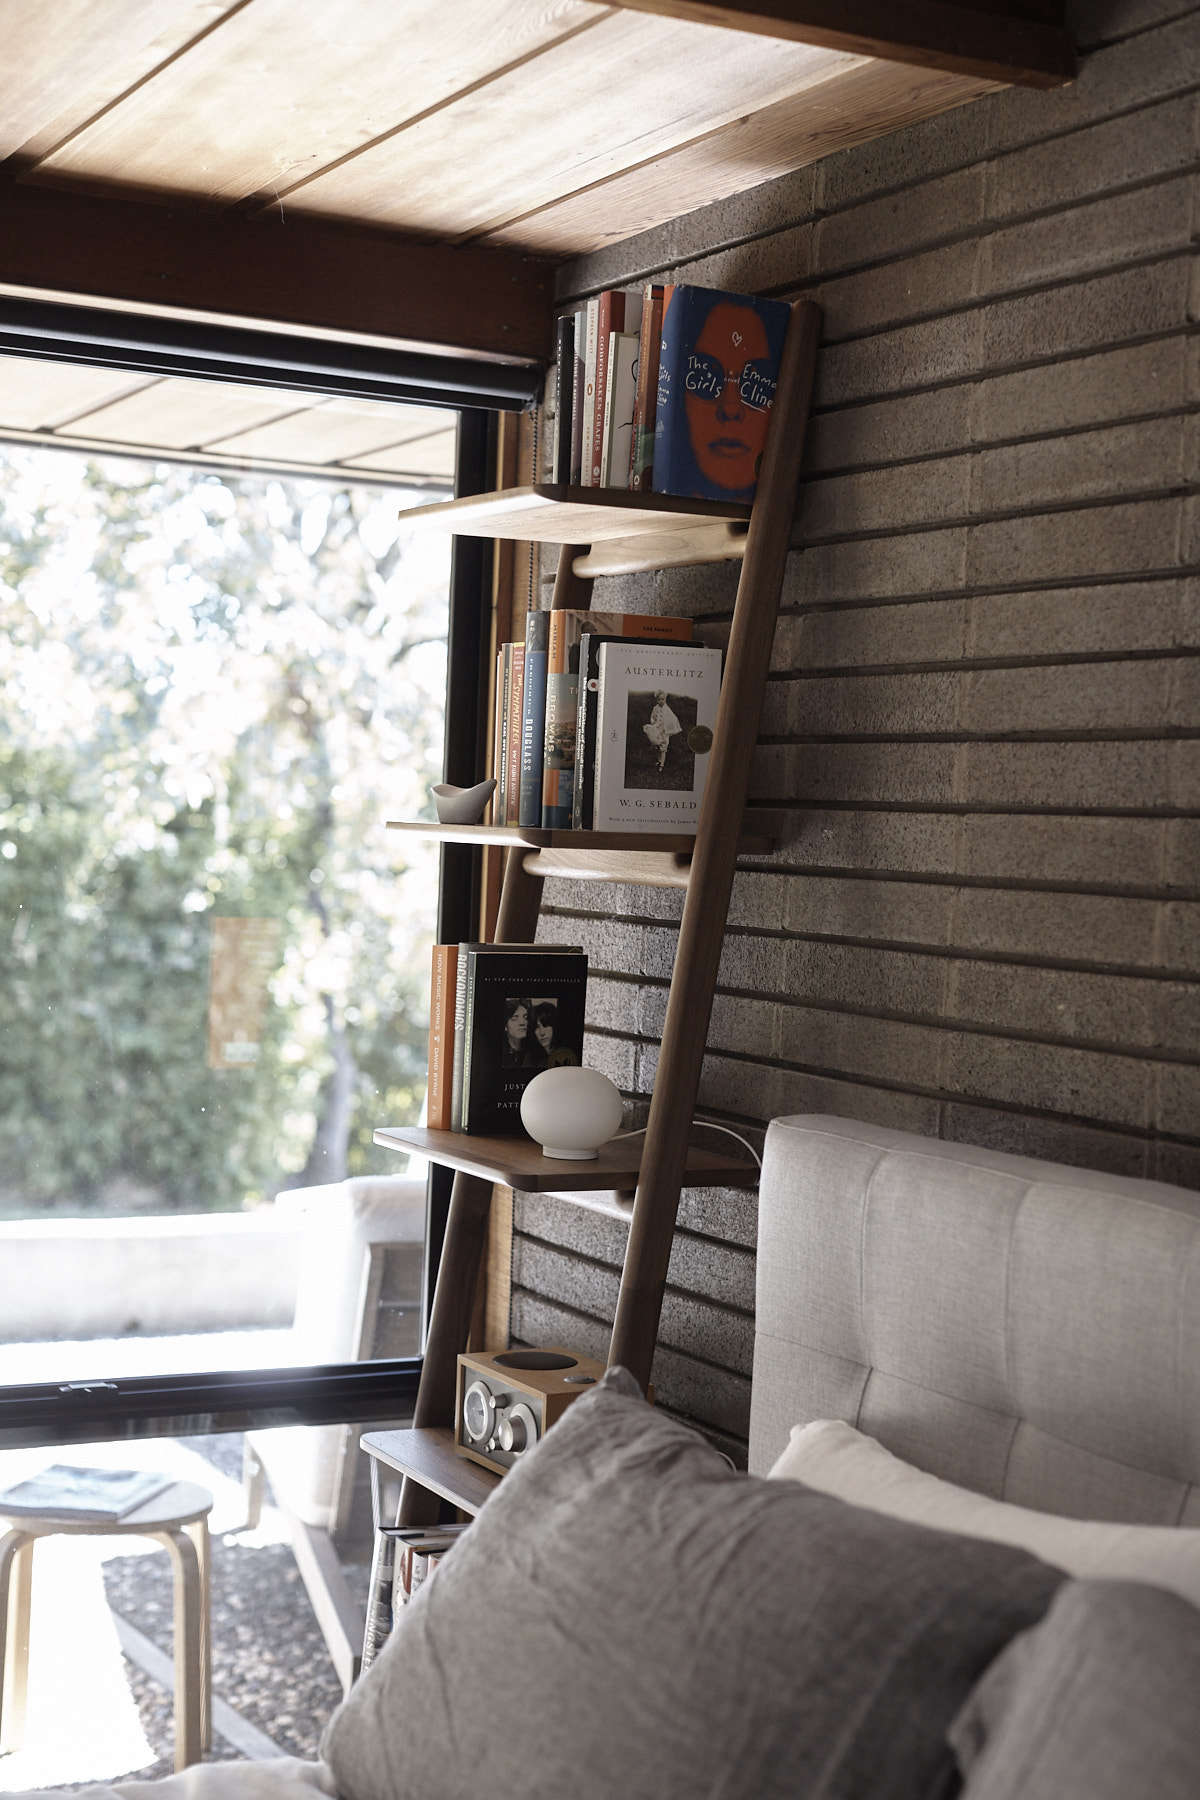 In the master bedroom, the Grid-Tufted Headboard is from West Elm and the Orkney Linen Bedding is from Rough Linen. The walnut Folk Ladder Shelf is by Norm Architects for DWR.